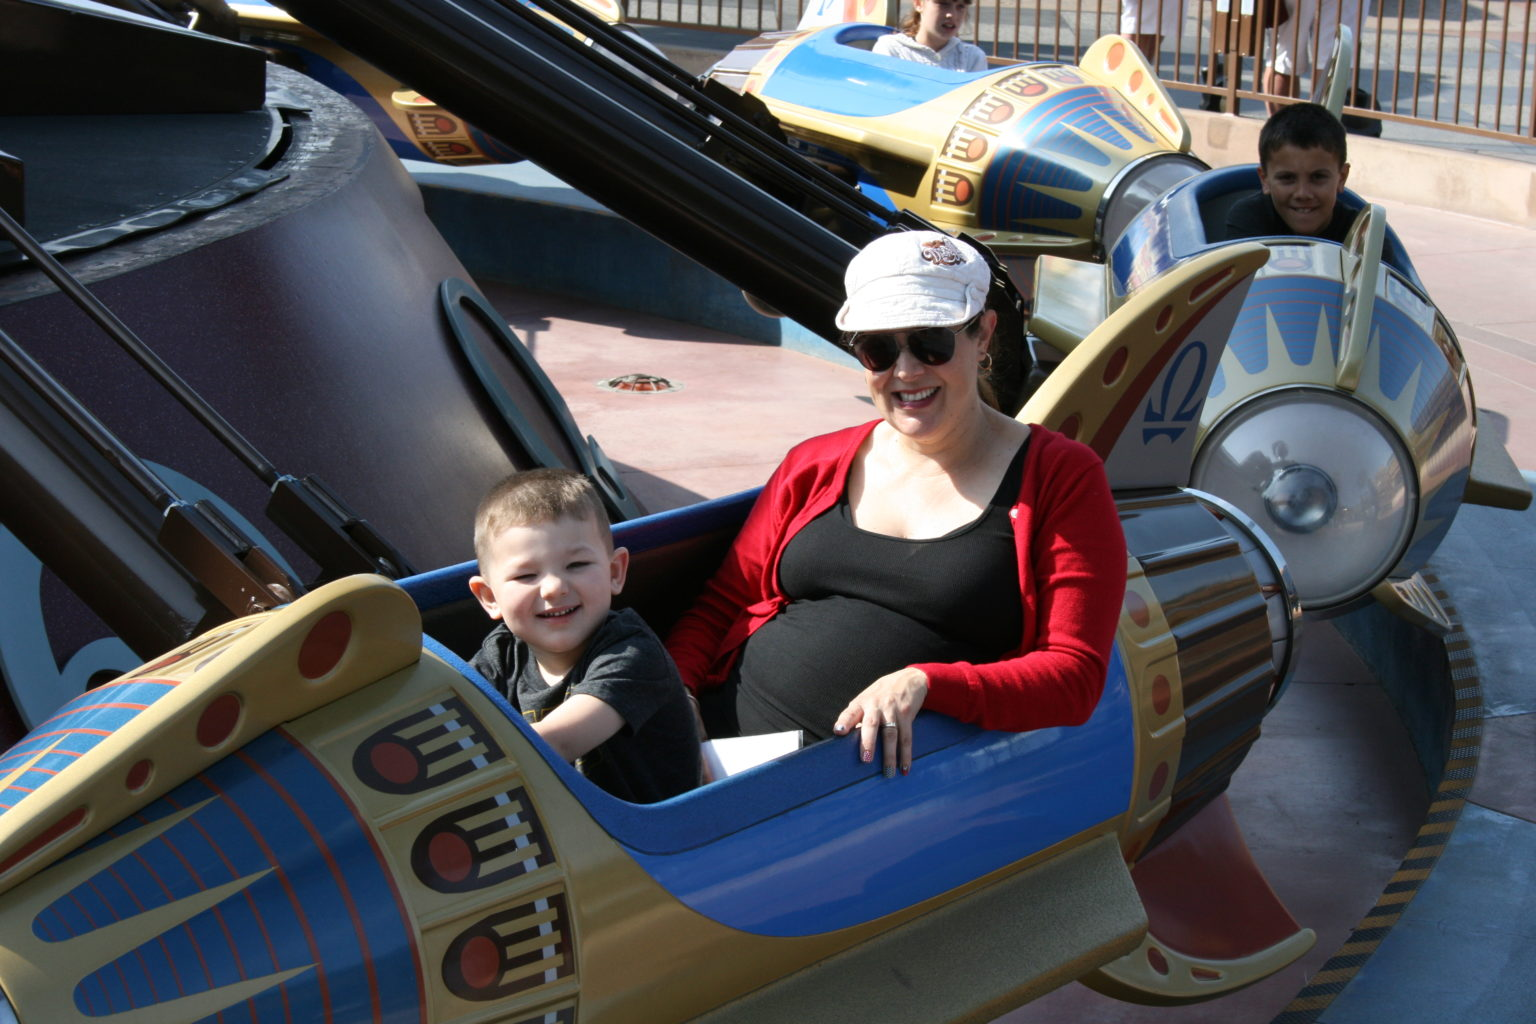 Pregnant mom and son riding Astro Orbitor at Disneyland - TravelingMom